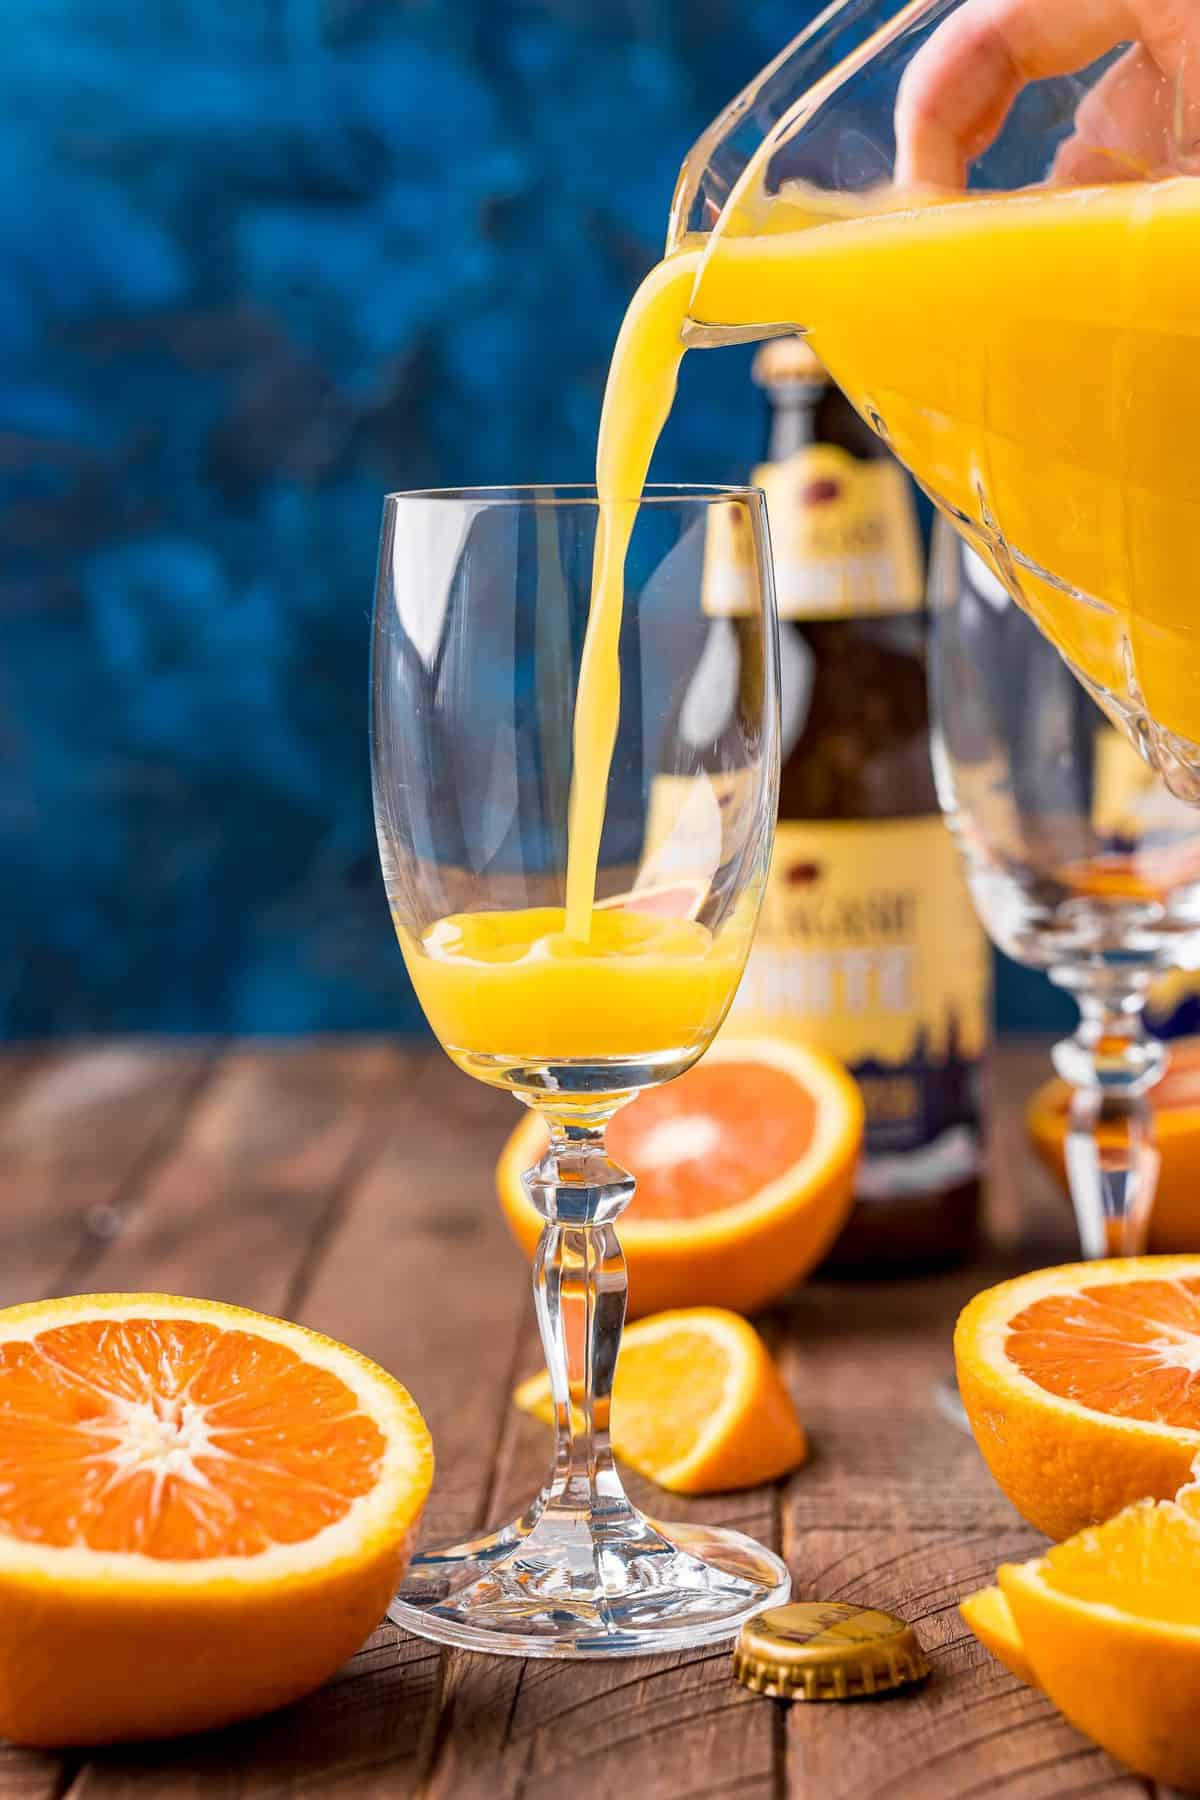 Orange juice being poured into a champagne flute.